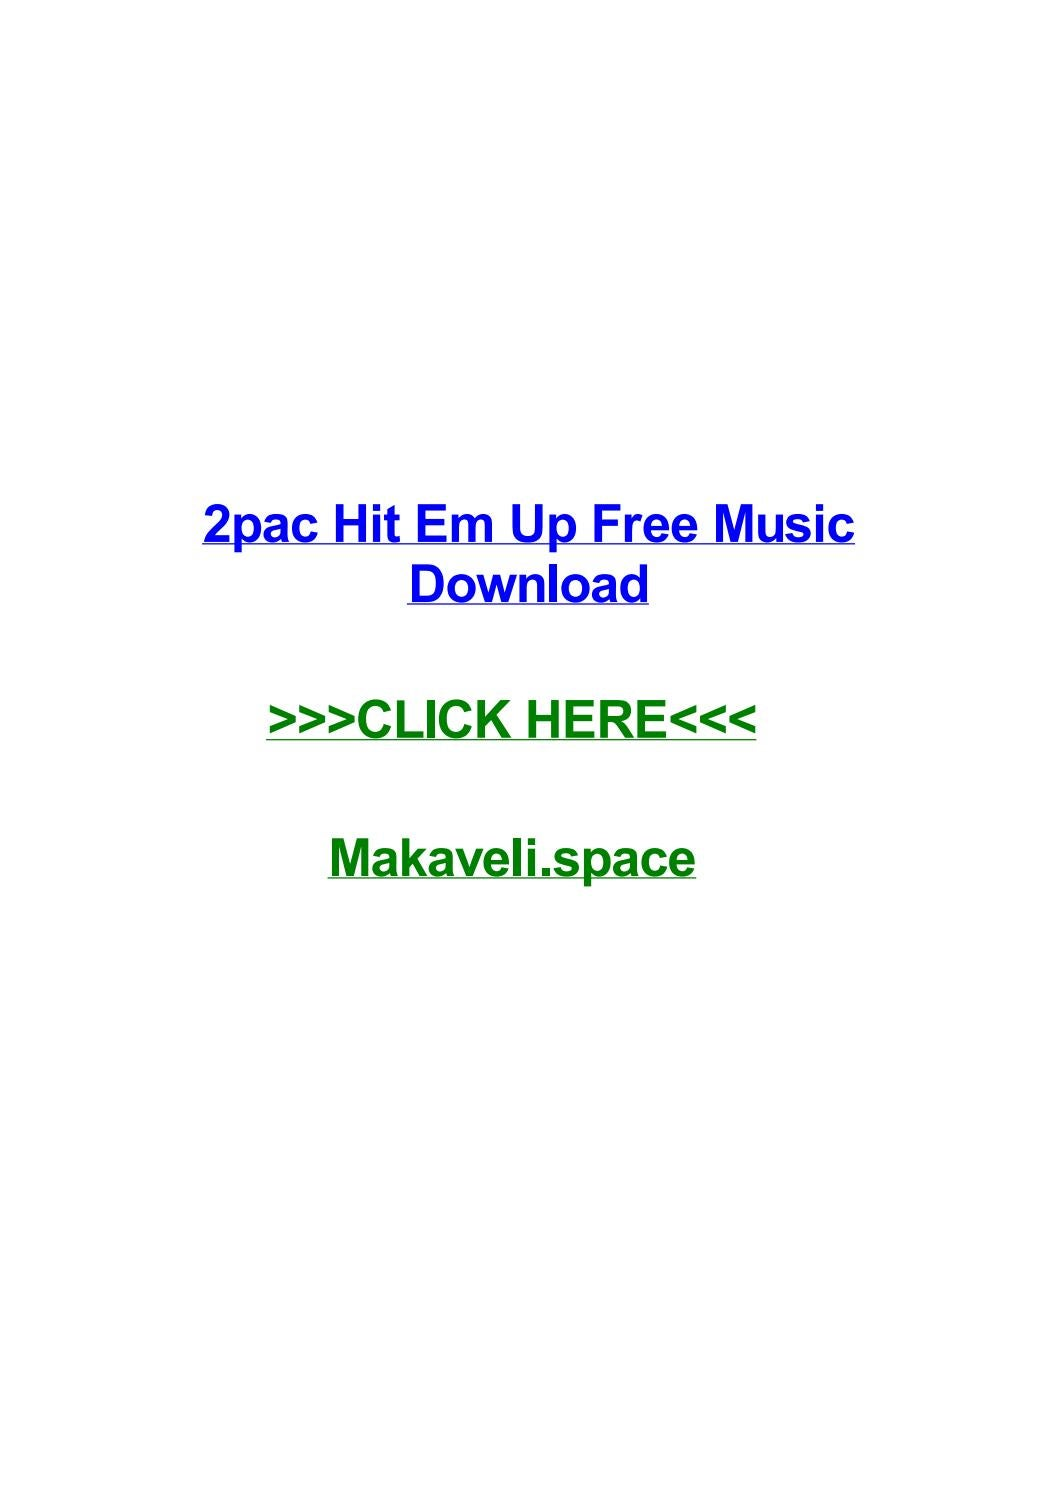 2pac hit em up free music download by sharonctym issuu.